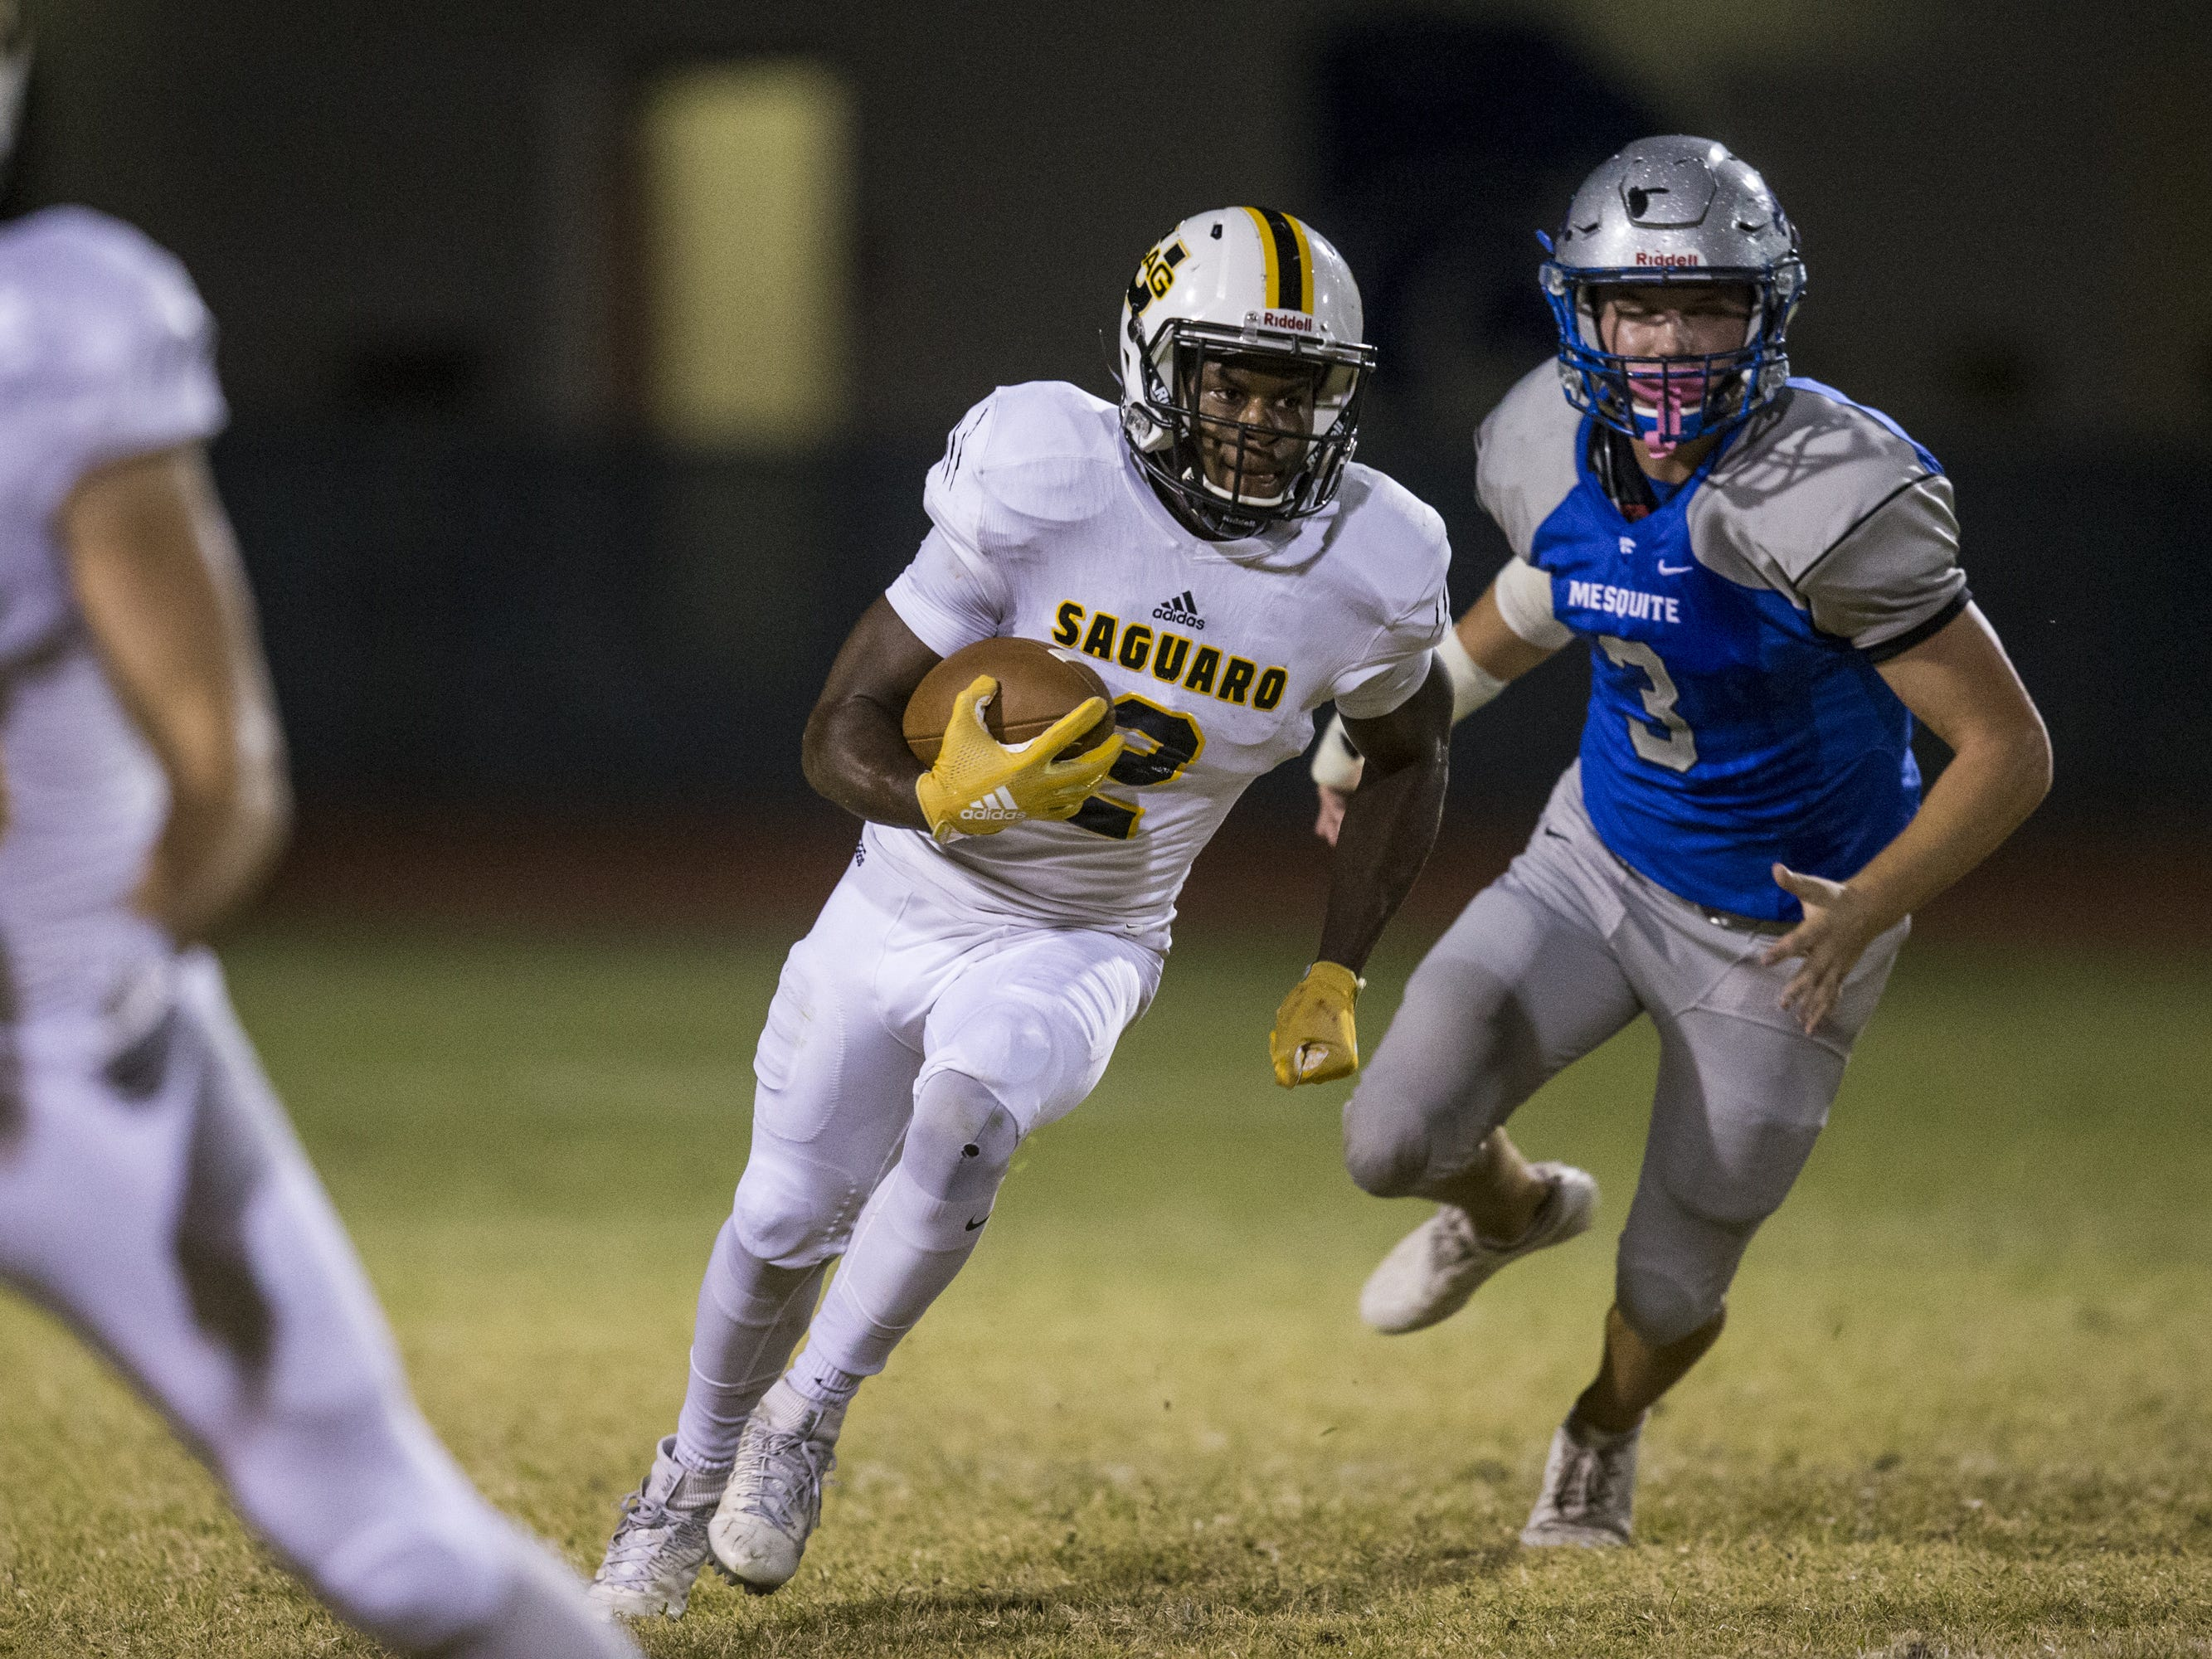 Saguaro's Marqui Johnson rushes against Mesquite in the first half on Friday, Oct. 26, 2018, at Mesquite High School in Gilbert, Ariz.  #azhsb